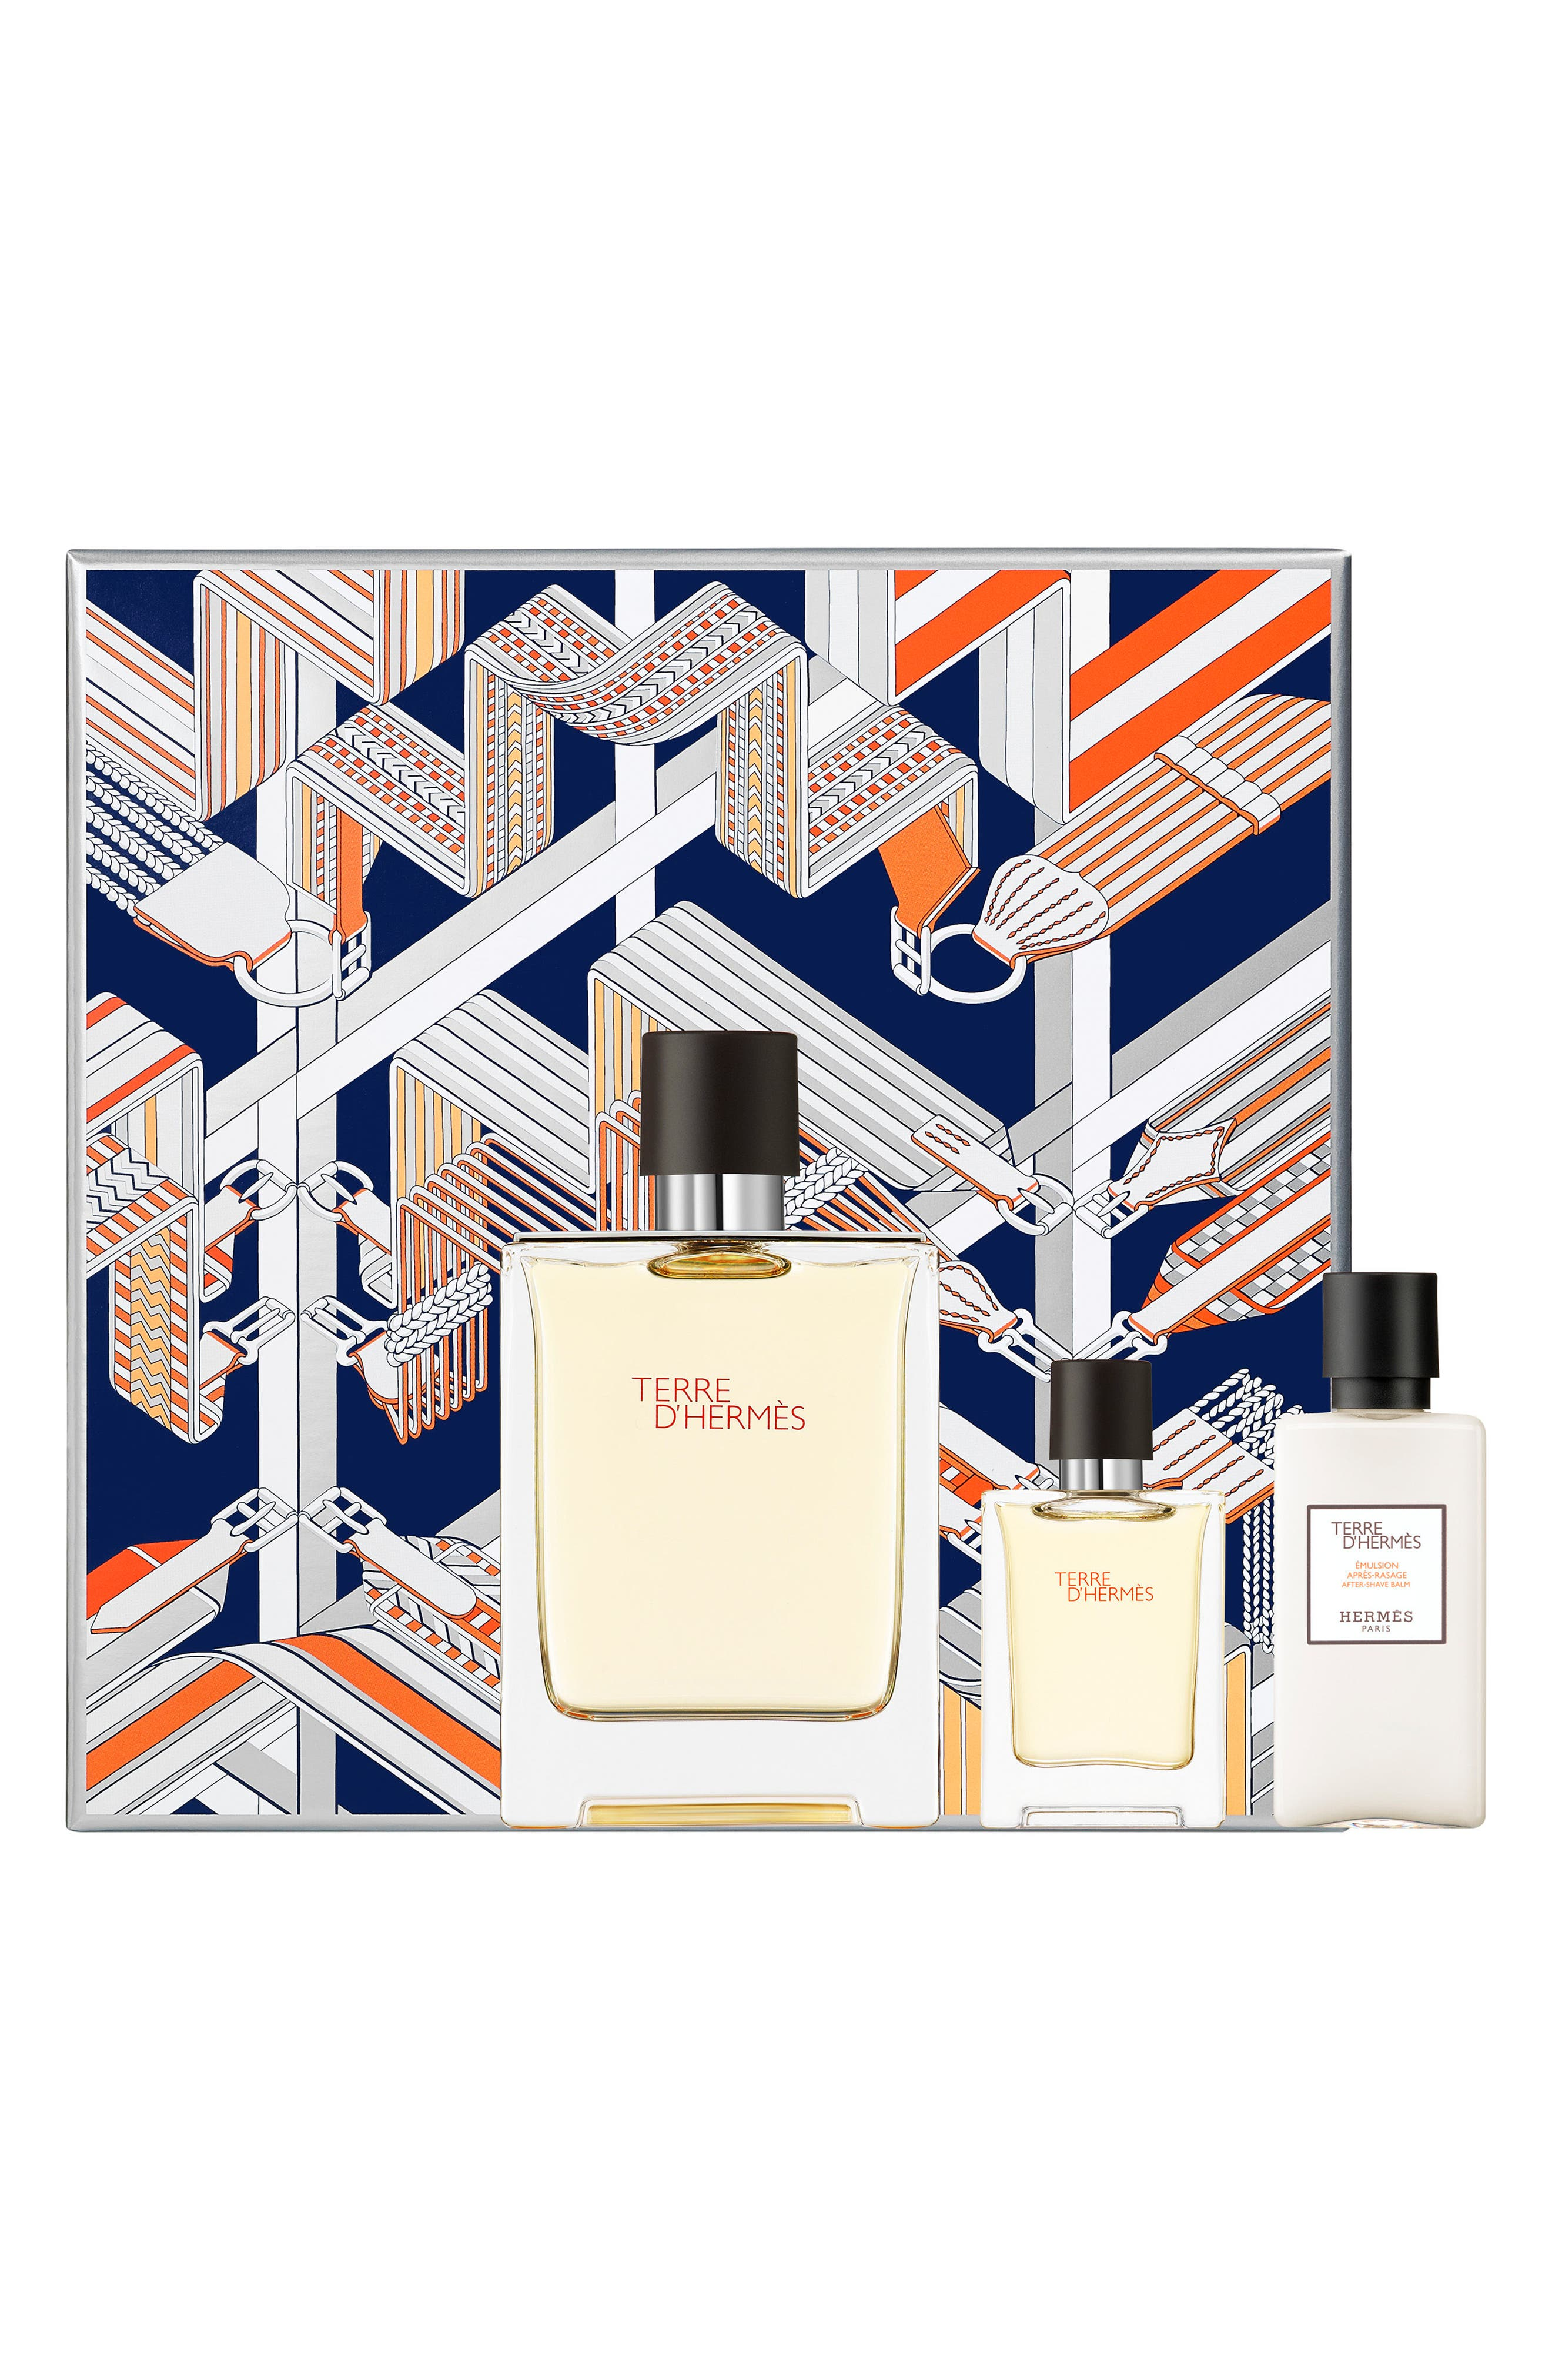 Terre d'Hermès - Eau de toilette set,                             Main thumbnail 1, color,                             000